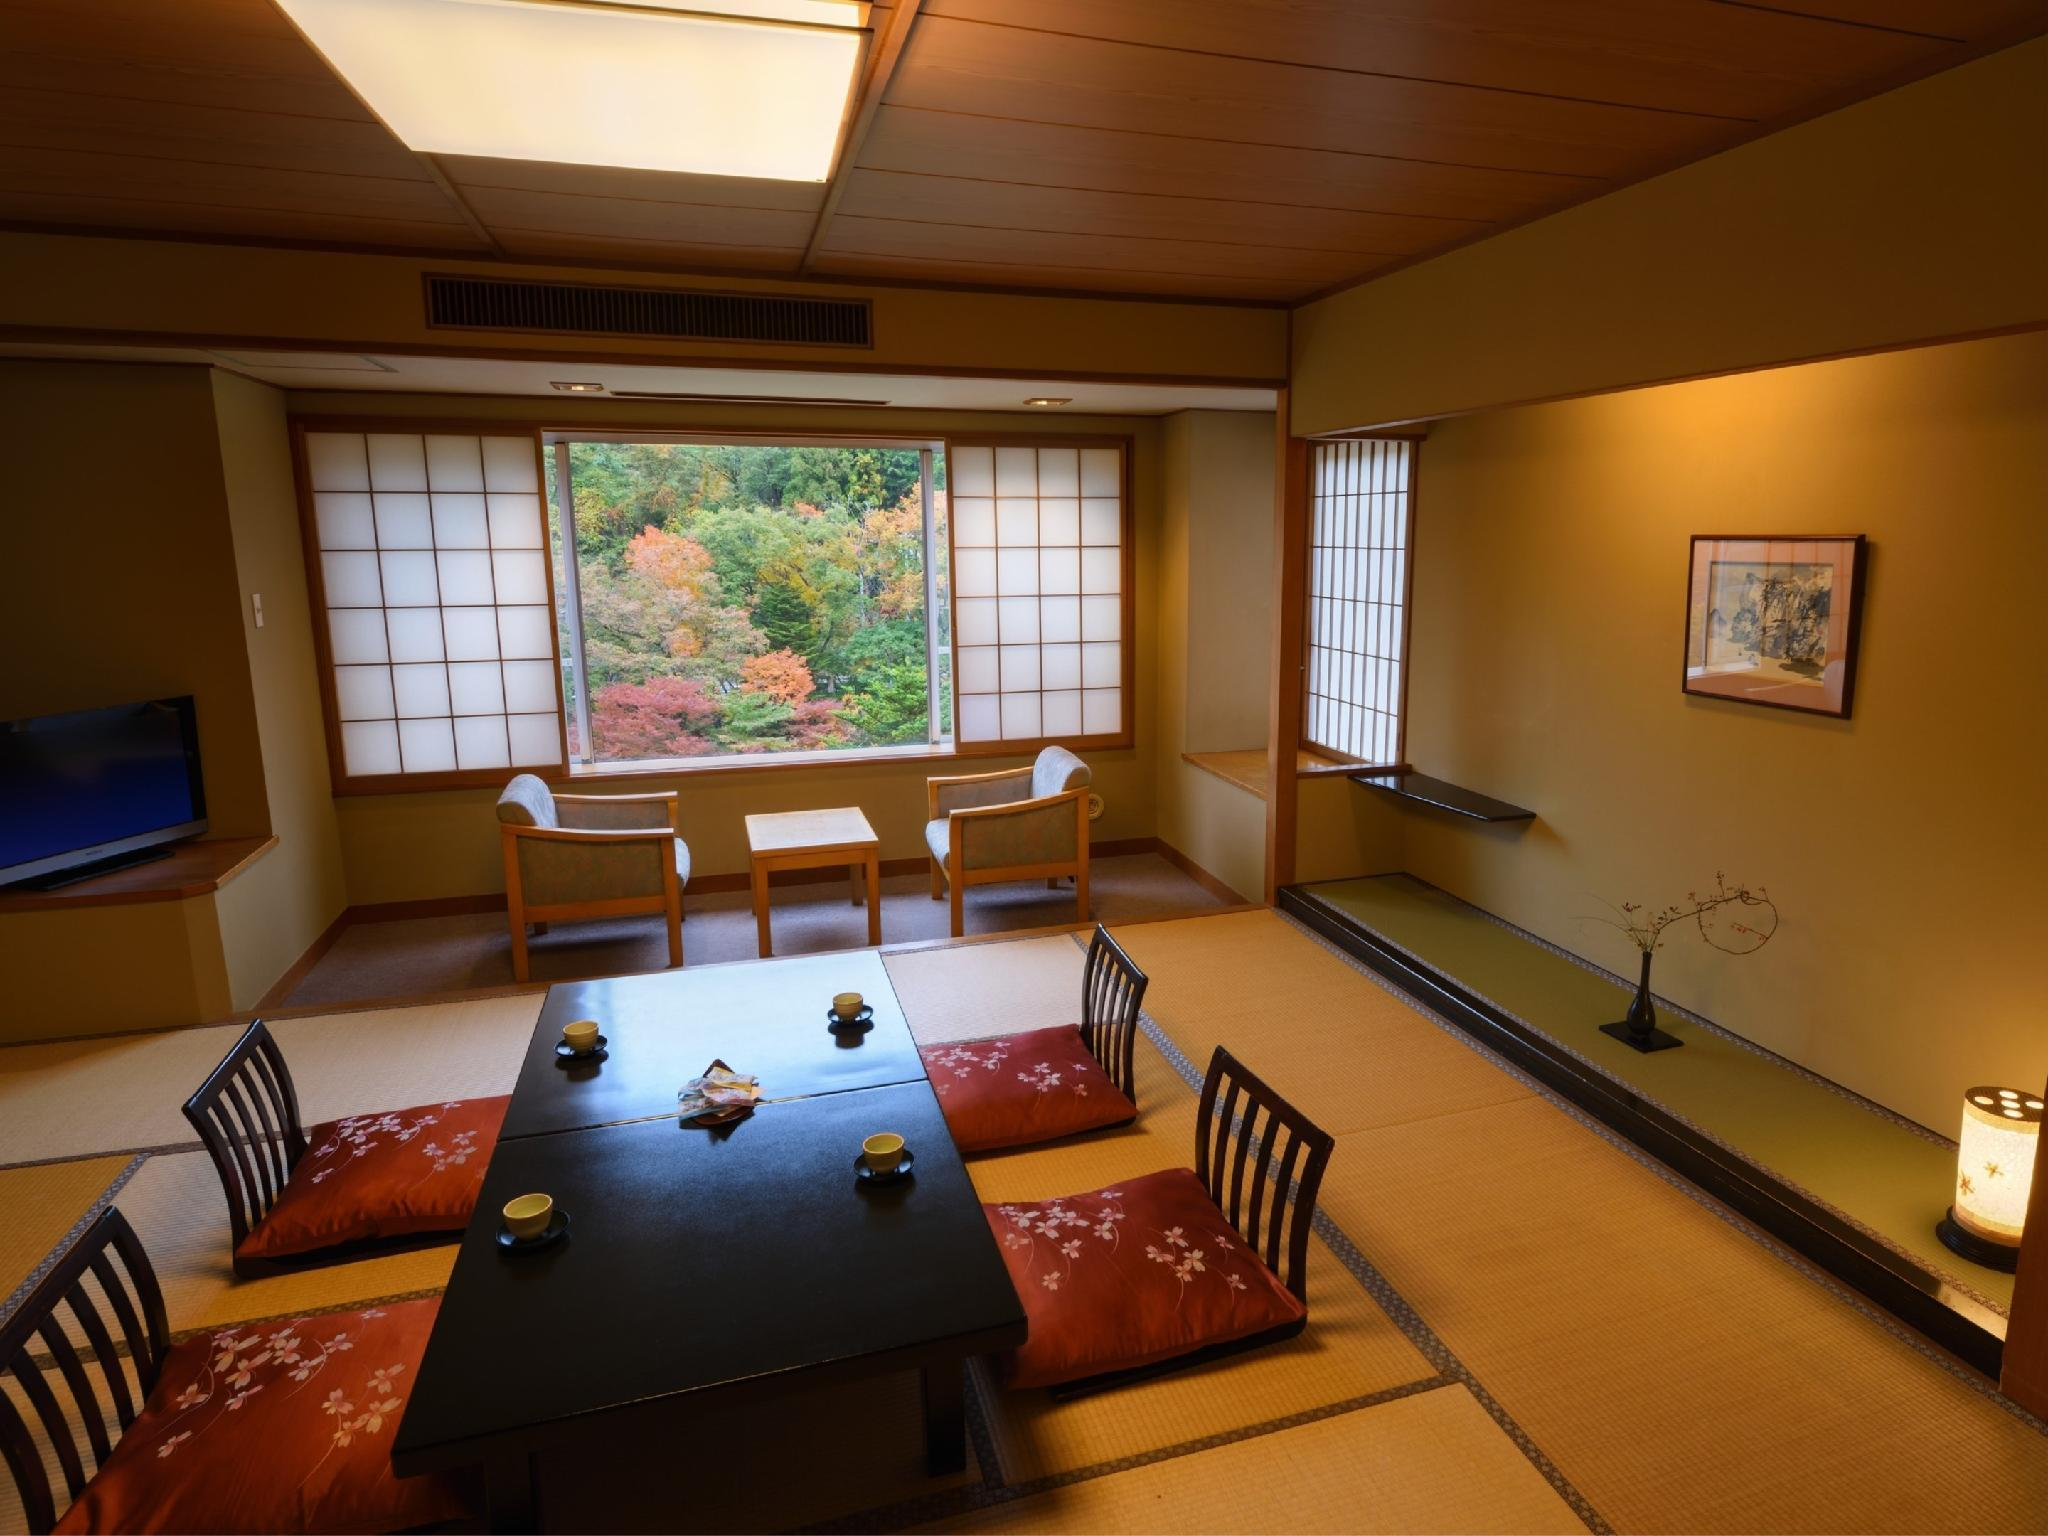 West Wing Japanese Style Room